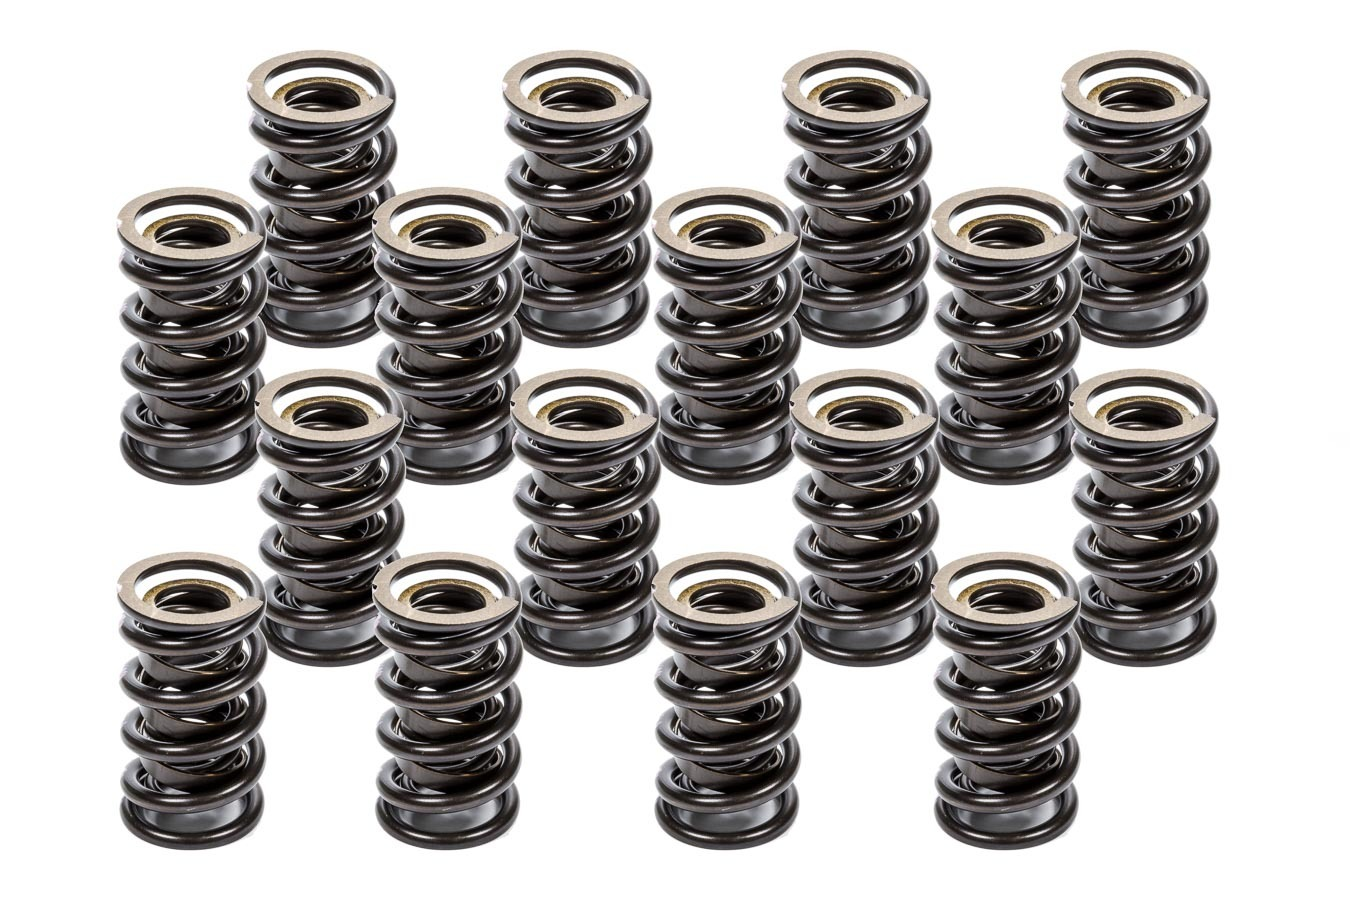 K-Motion K-1150 Valve Spring, Dual Spring / Damper, 531 lb/in Spring Rate, 1.150 in Coil Bind, 1.550 in OD, Set of 16